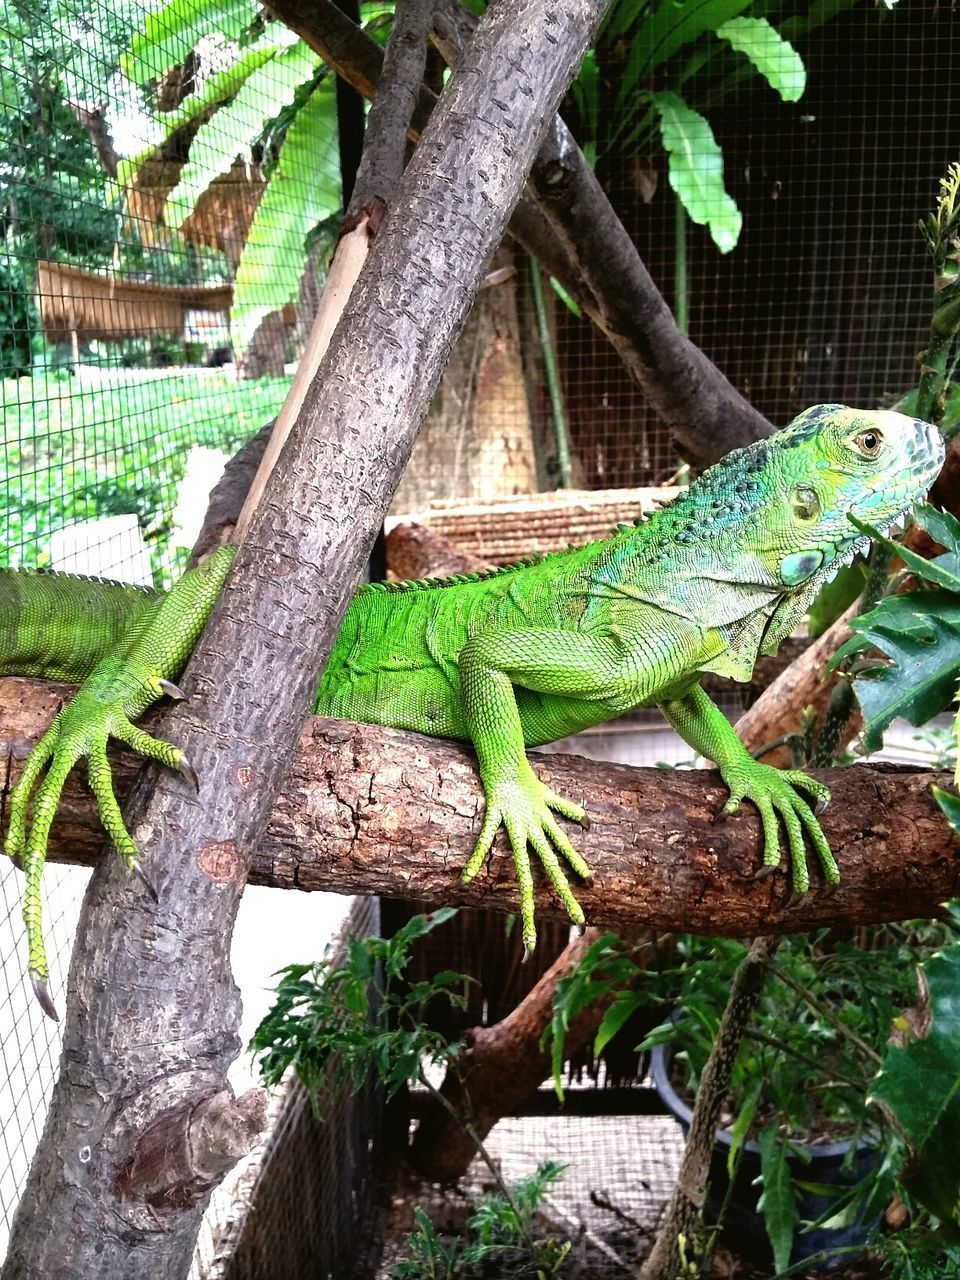 reptile, animal themes, one animal, animals in the wild, green color, lizard, animal wildlife, tree, nature, day, no people, branch, chameleon, outdoors, tree trunk, iguana, climbing, close-up, mammal